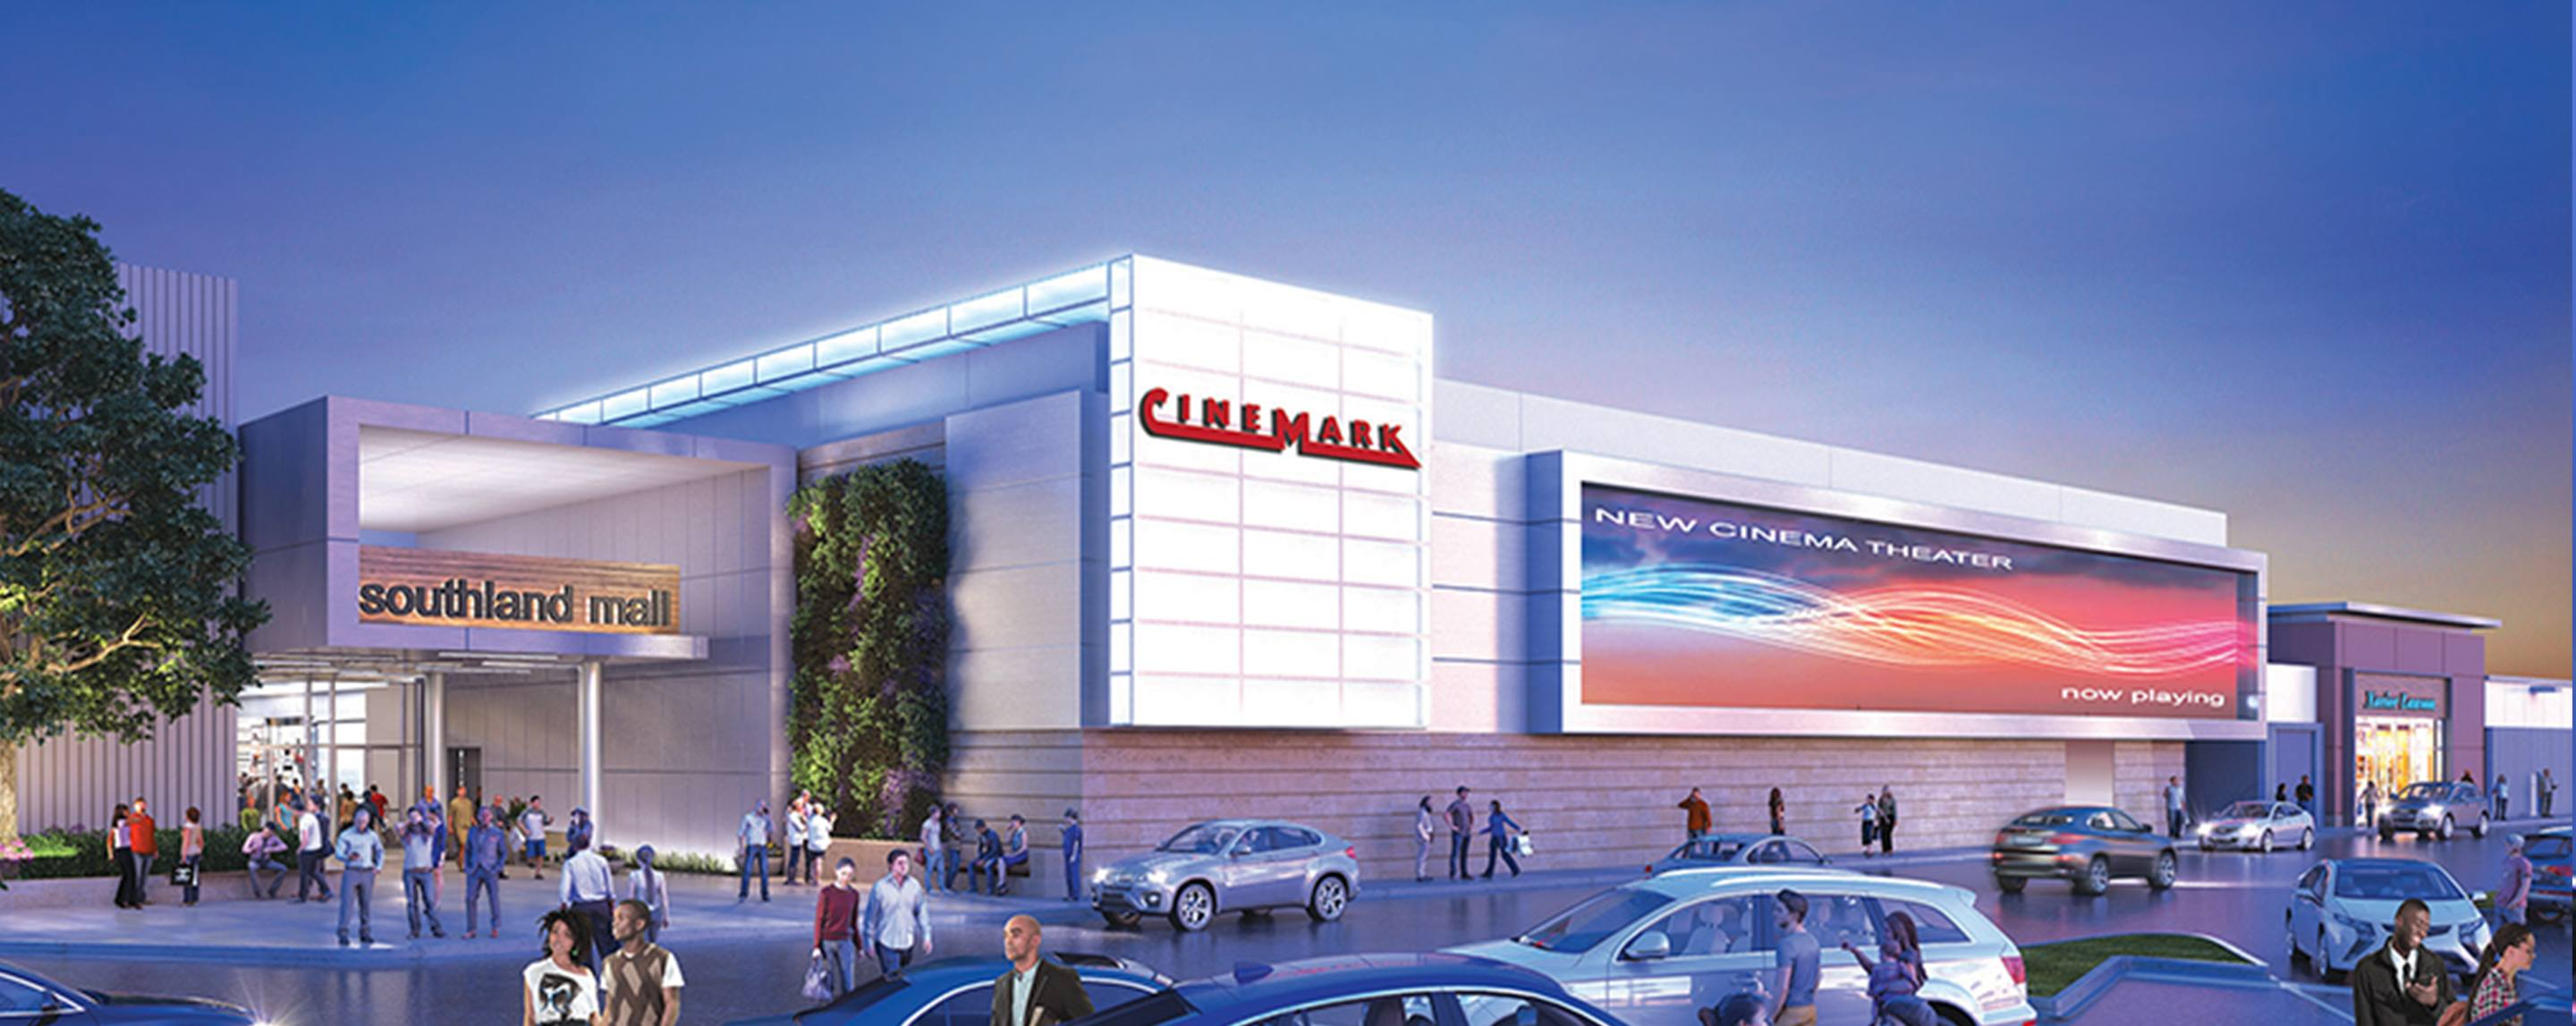 The exterior of the Southland Mall is bustling with people and cars.  There is a Cinemark in the bui